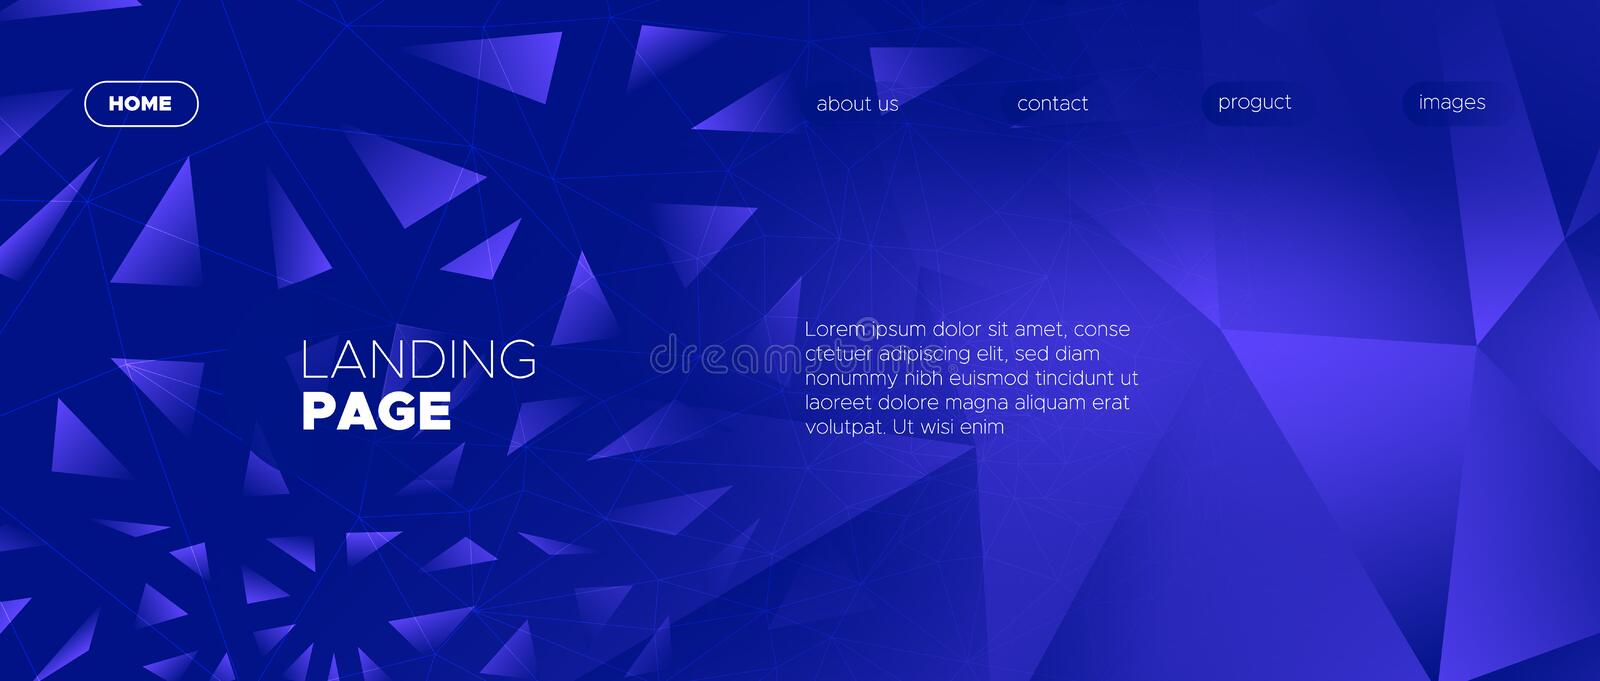 Abstract Polygon Wallpaper. Blue Geometry royalty free illustration